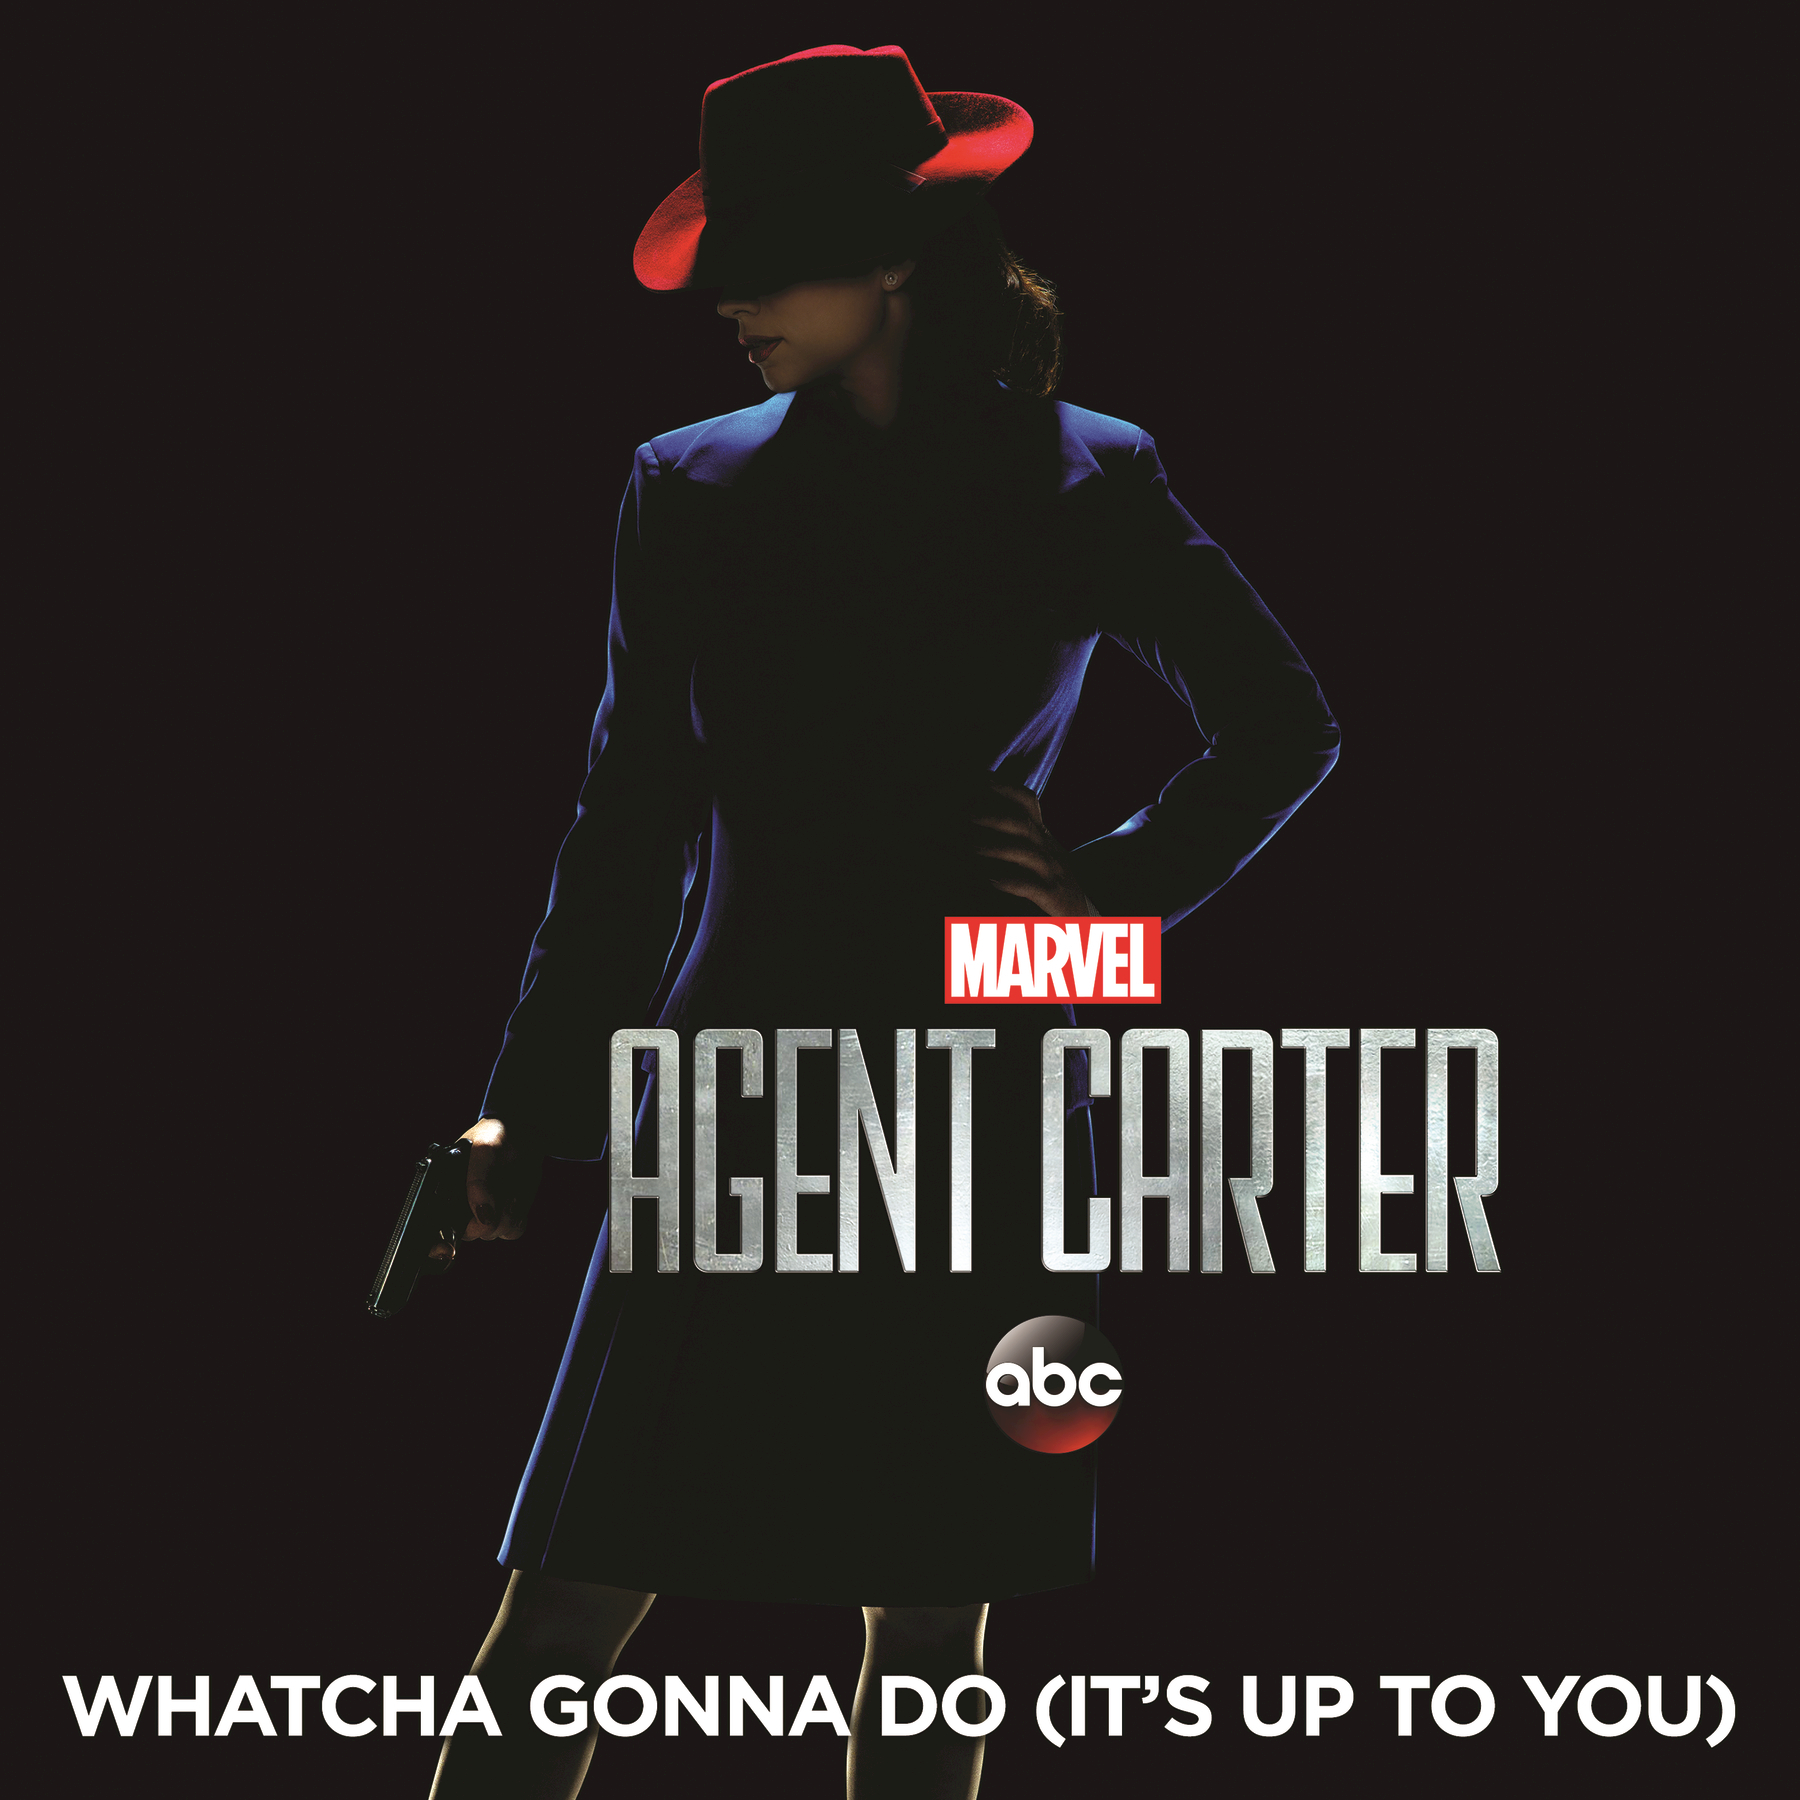 Agent Carter: Whatcha Gonna Do